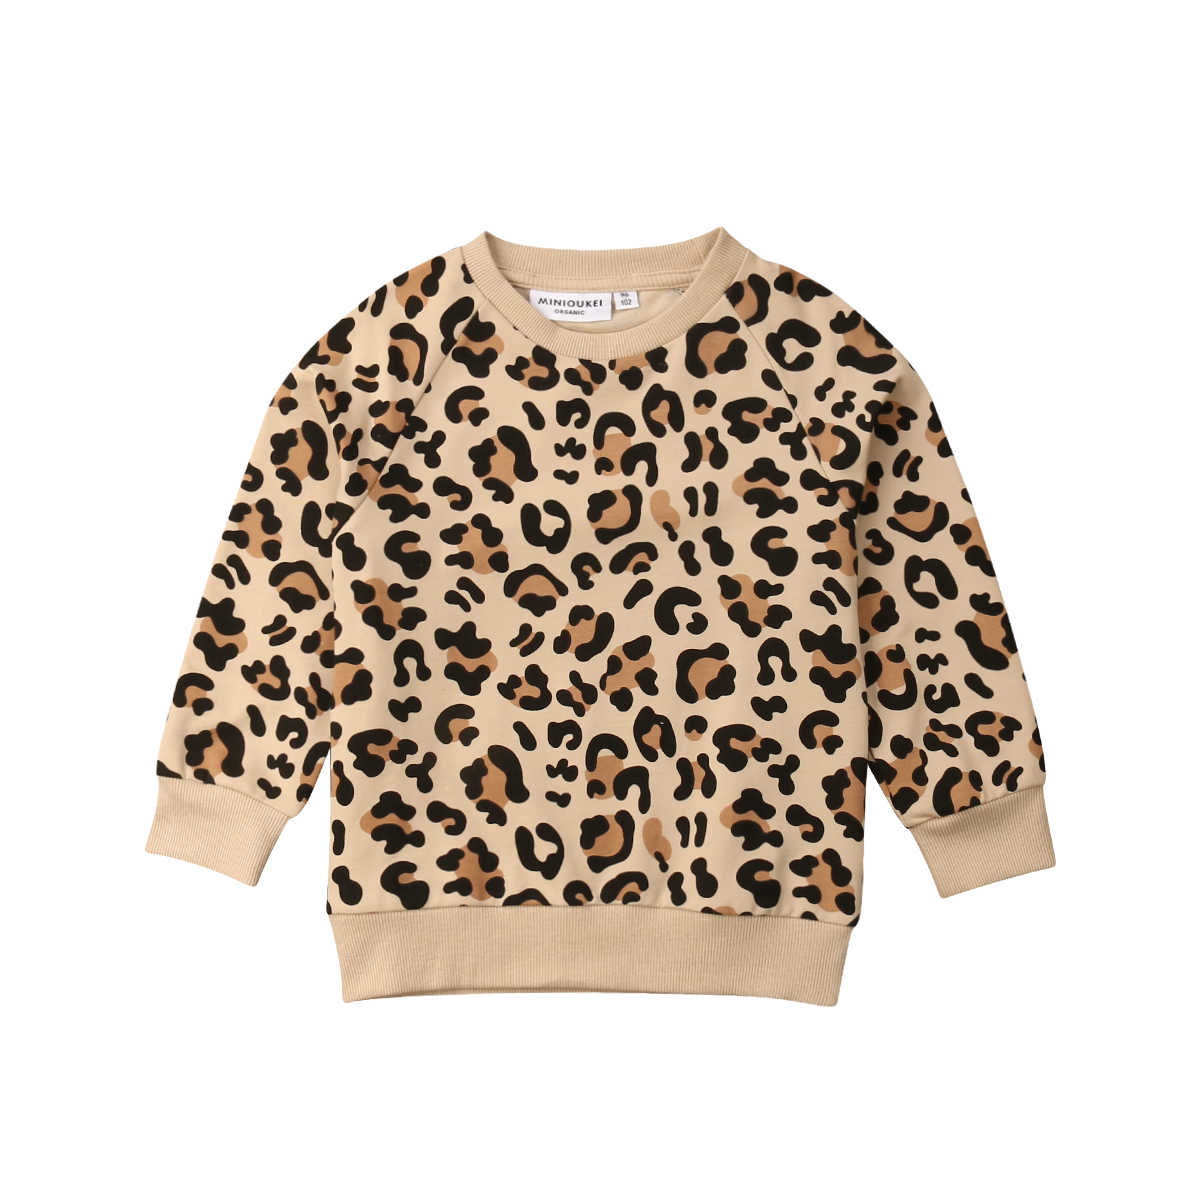 1-7Years Toddler Kid Baby Girl Boy Bunny Leopard Print Top T-shirt Sweatshirts Clothes